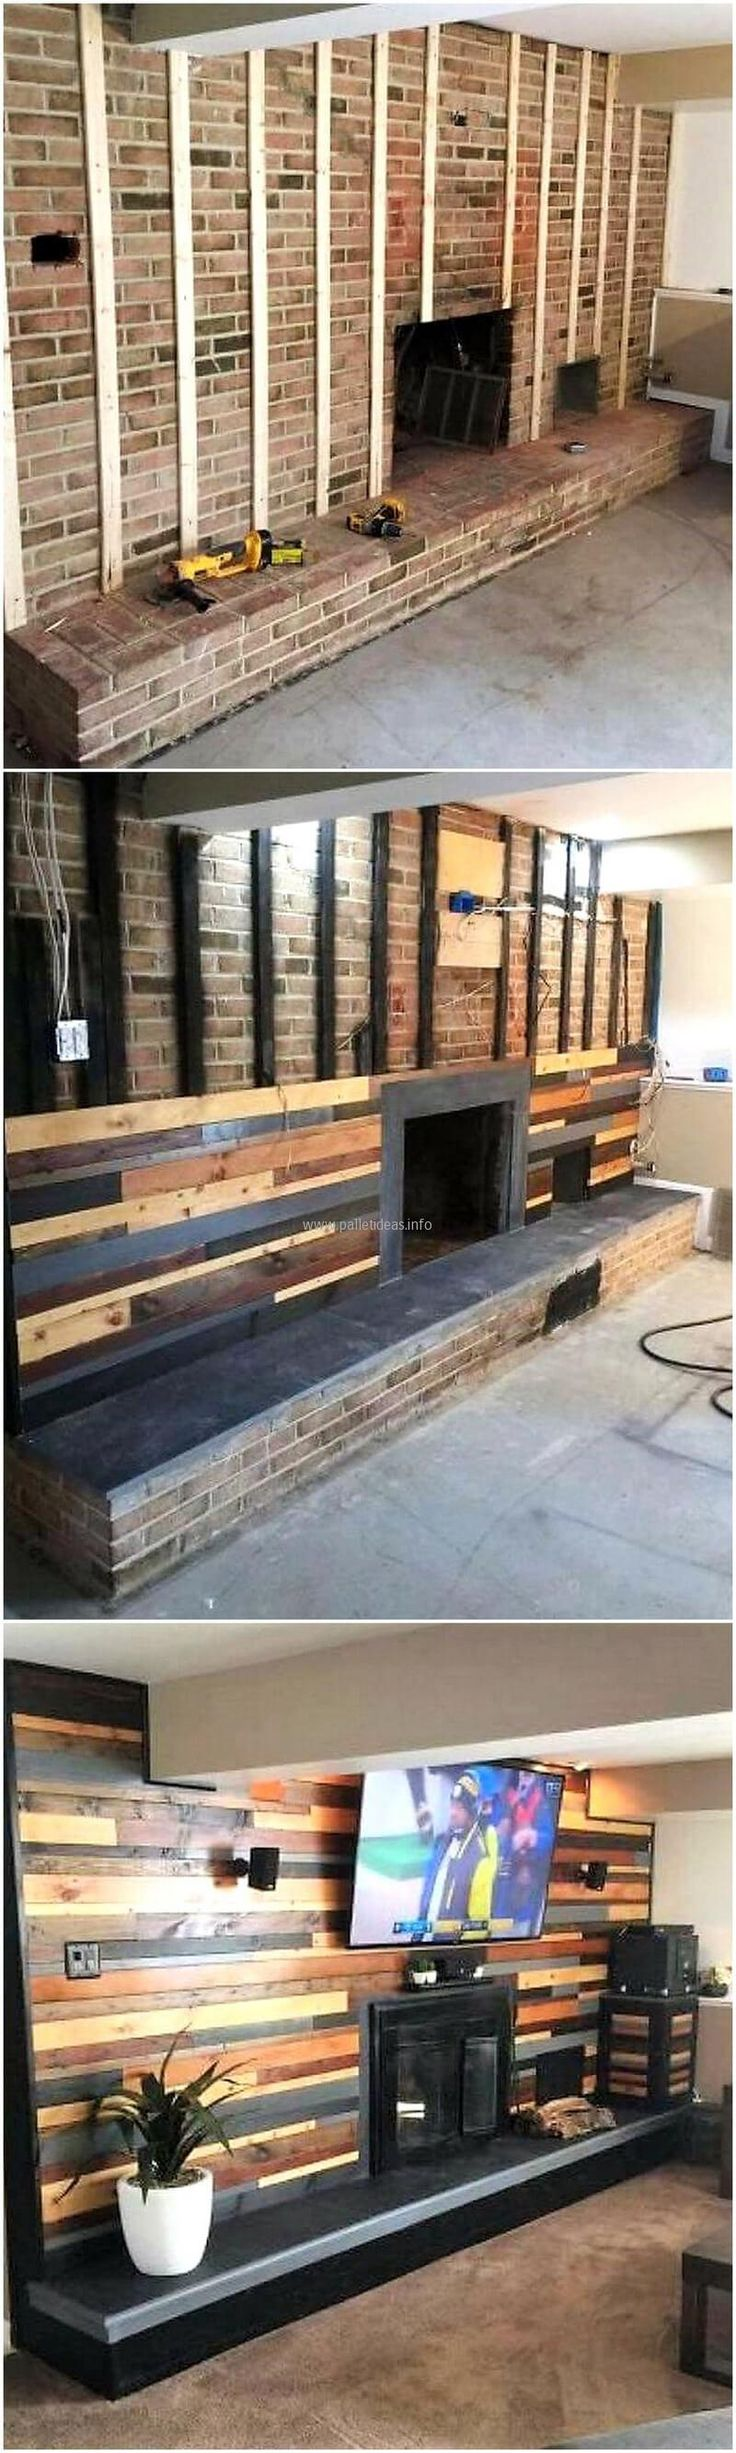 Working with pallets 5 essential woodworking power tools that won - Some Of The Fantastic Pallet Reusing Ideas